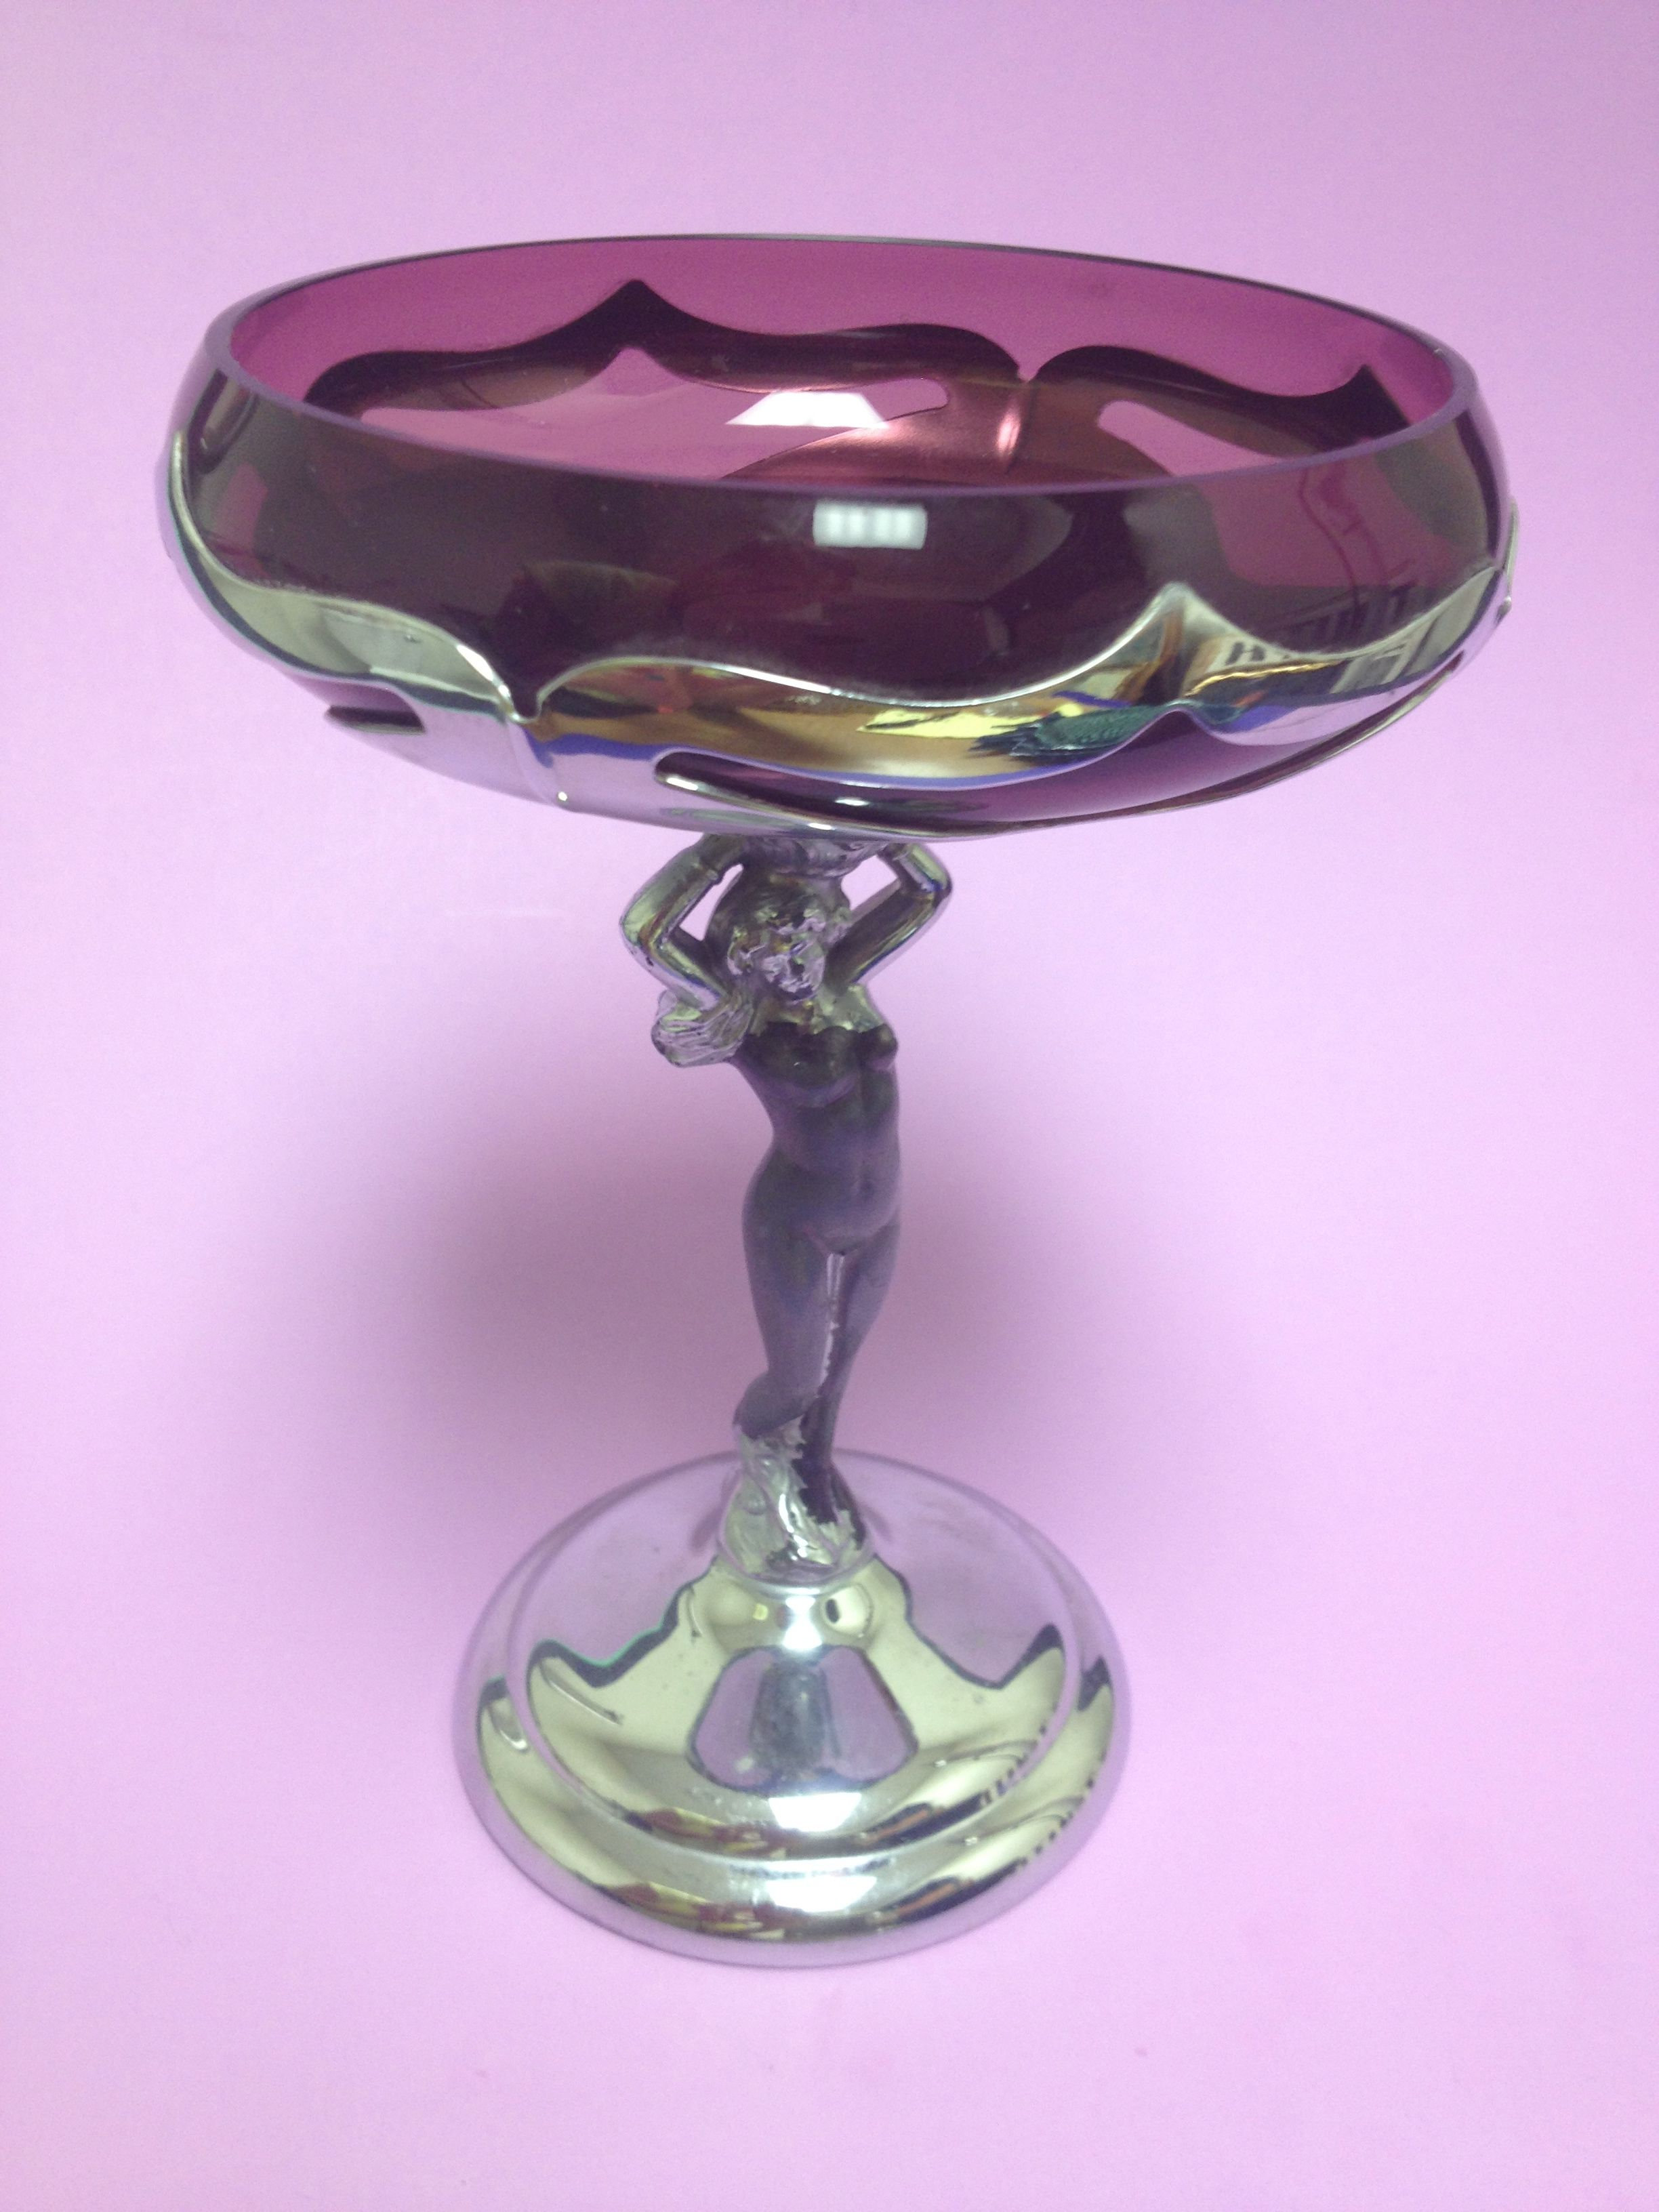 1924 Farber Bros. New York Hallmarked Silver Goblet. Email us at euphoriaresale@gmail.com for more info.